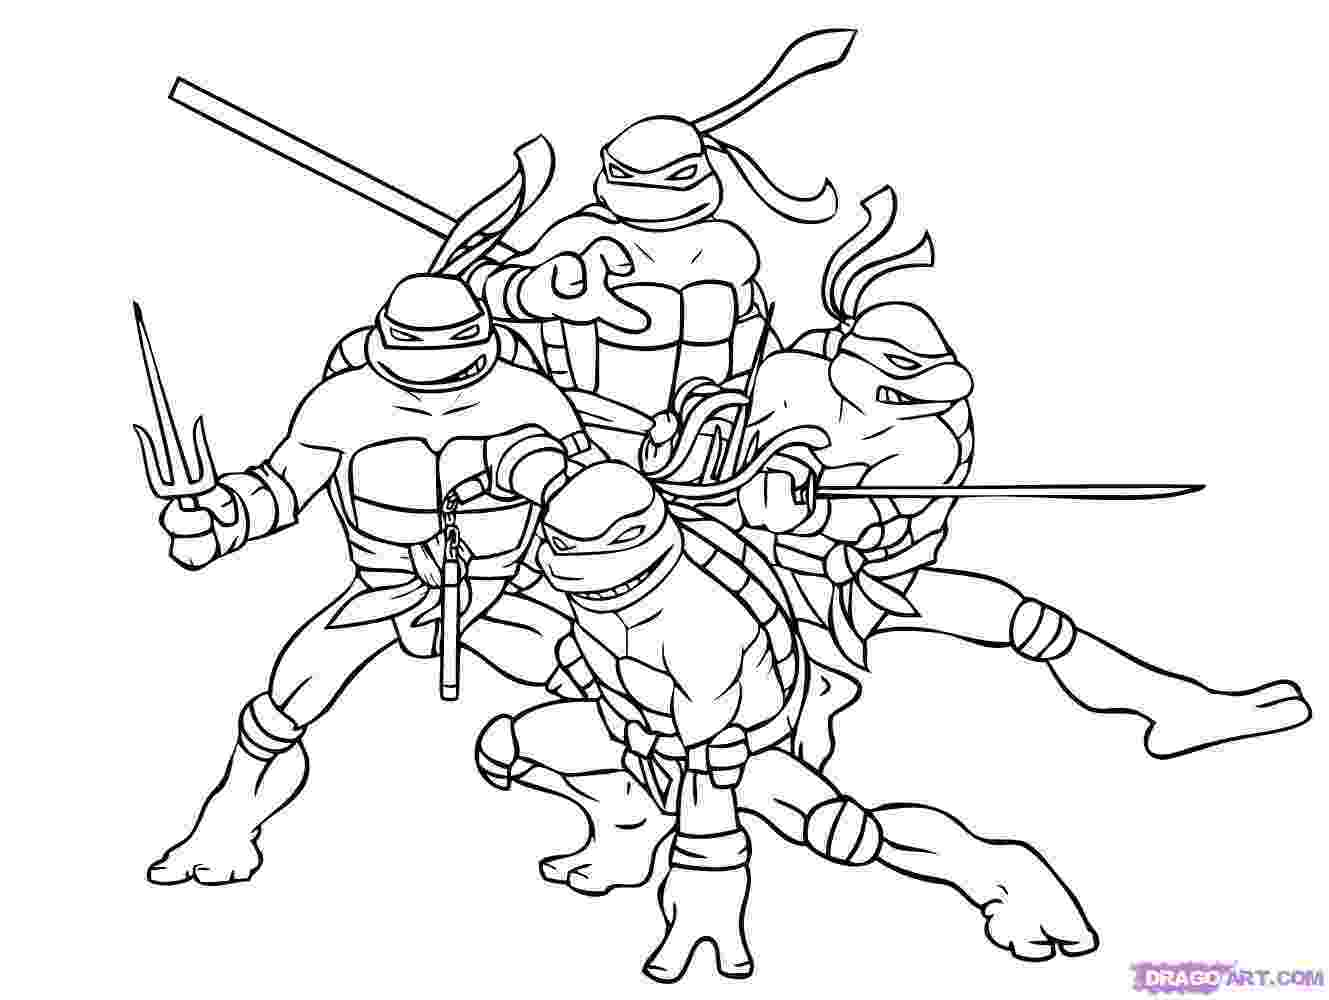 tmnt coloring pictures coloring pages for 12 year olds at getcoloringscom free tmnt coloring pictures